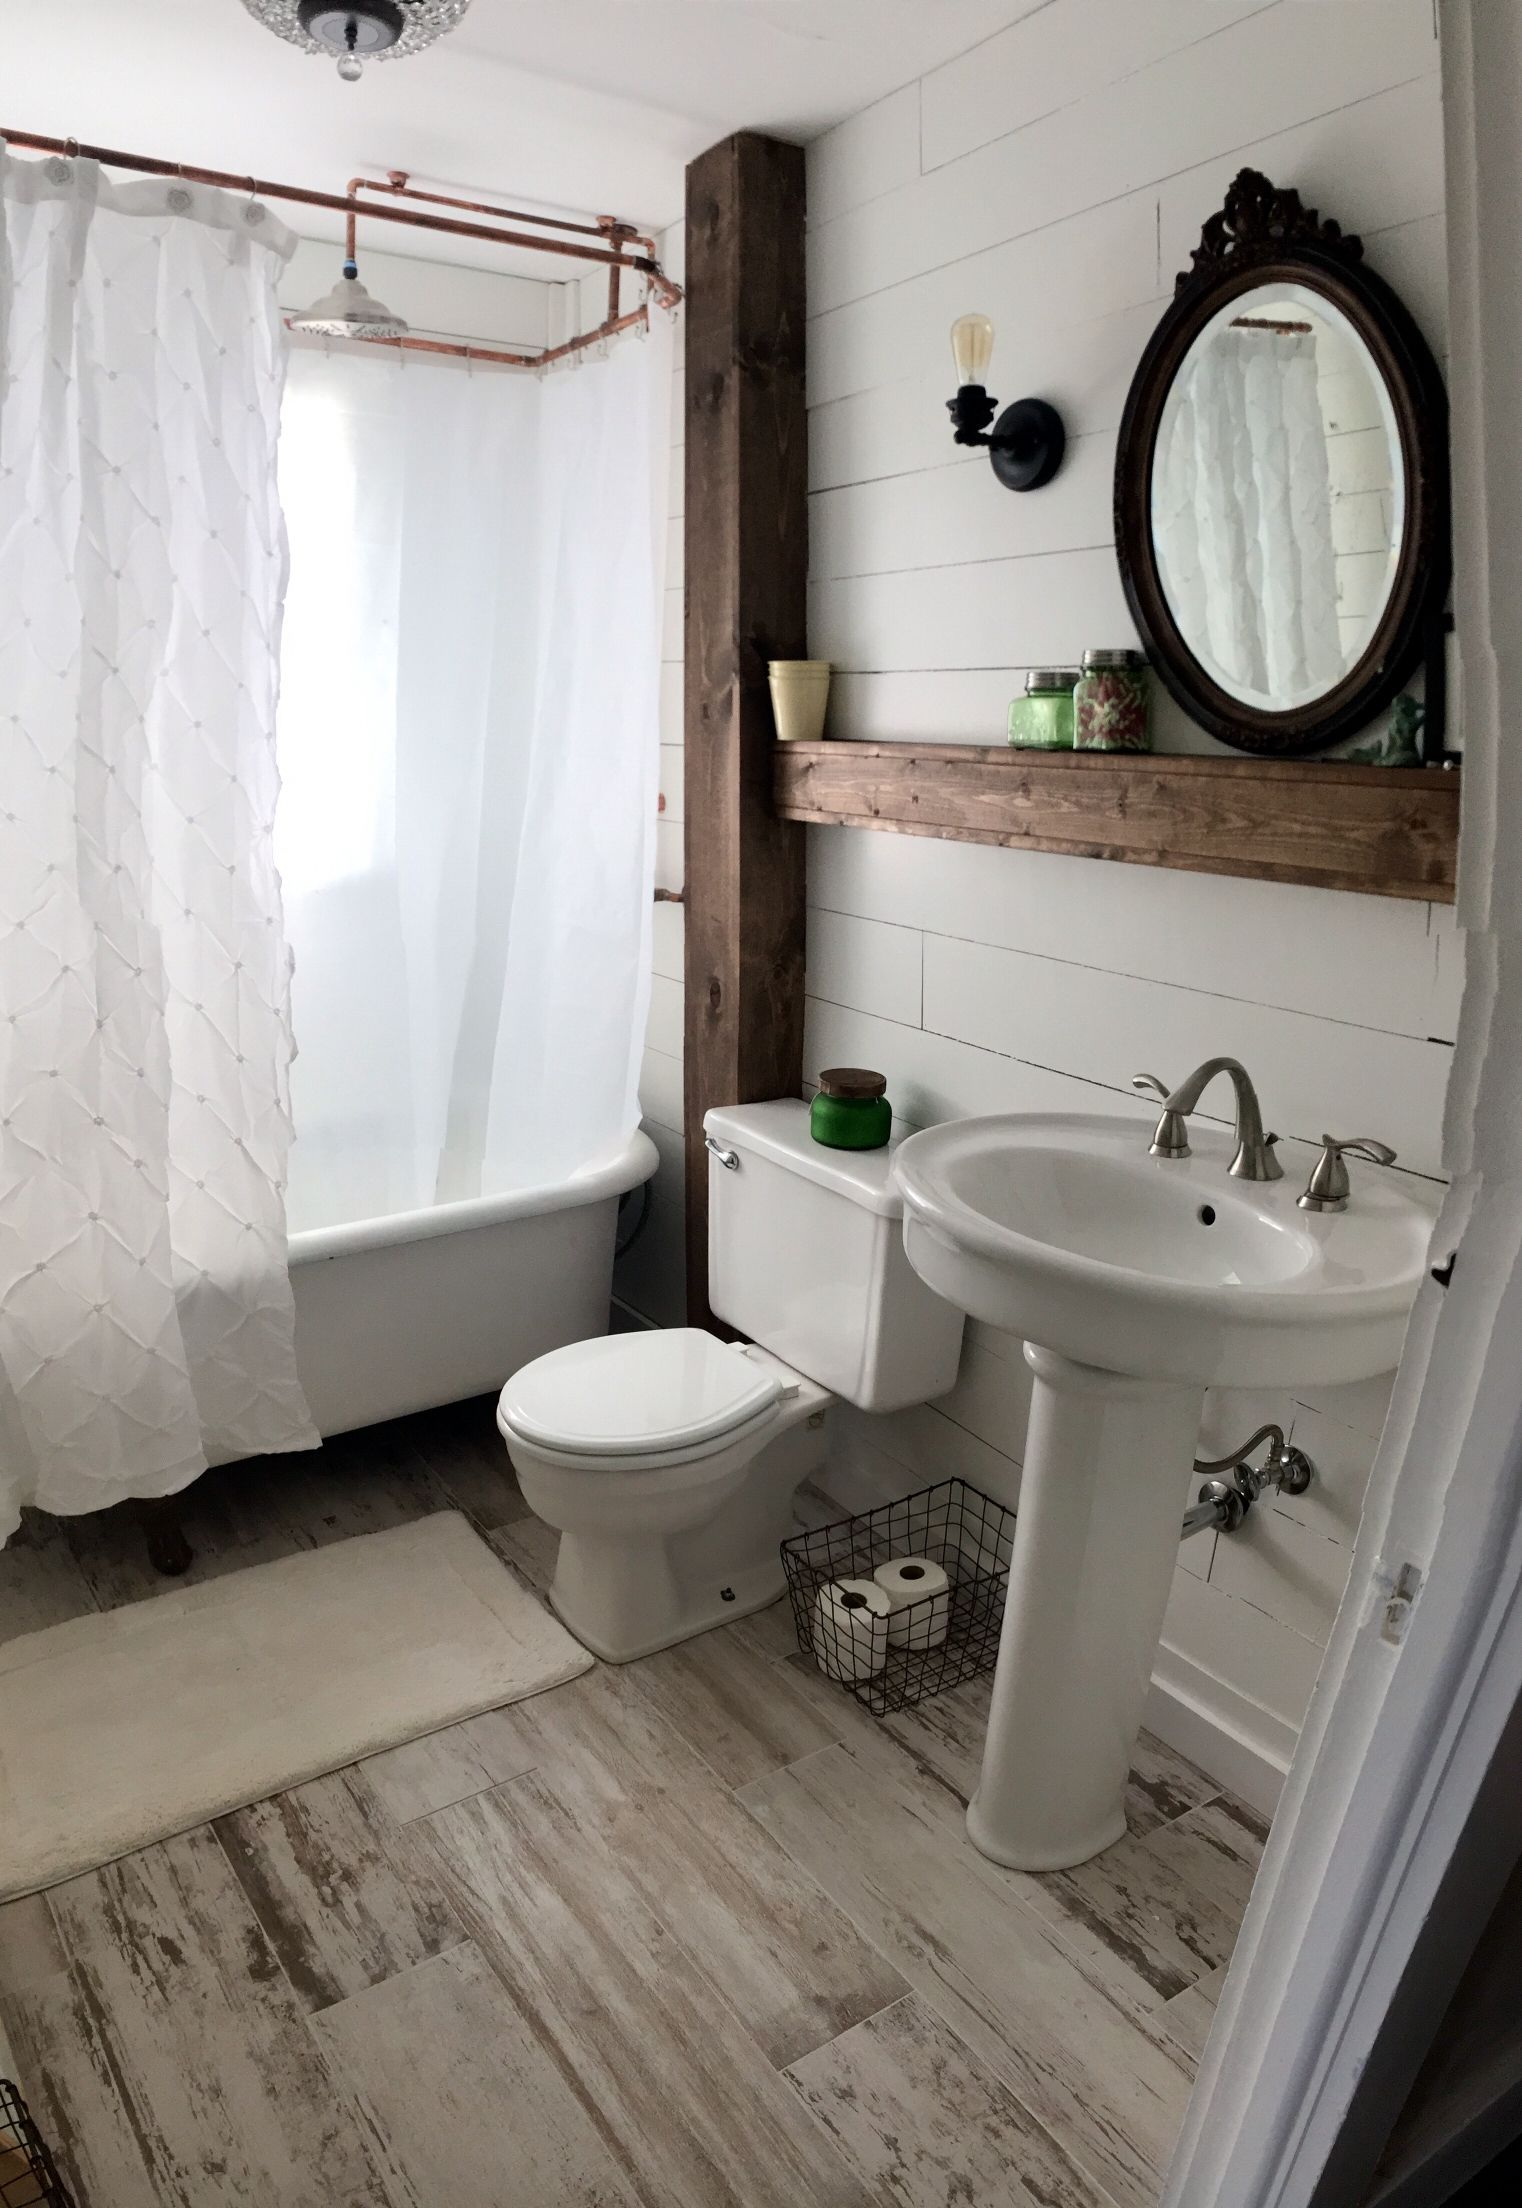 farmhouse style bathroom shiplap bathroom farmstyle redo http farmhouse style bathroom shiplap bathroom farmstyle redo http whymattress farmhouse style bathroomscountry